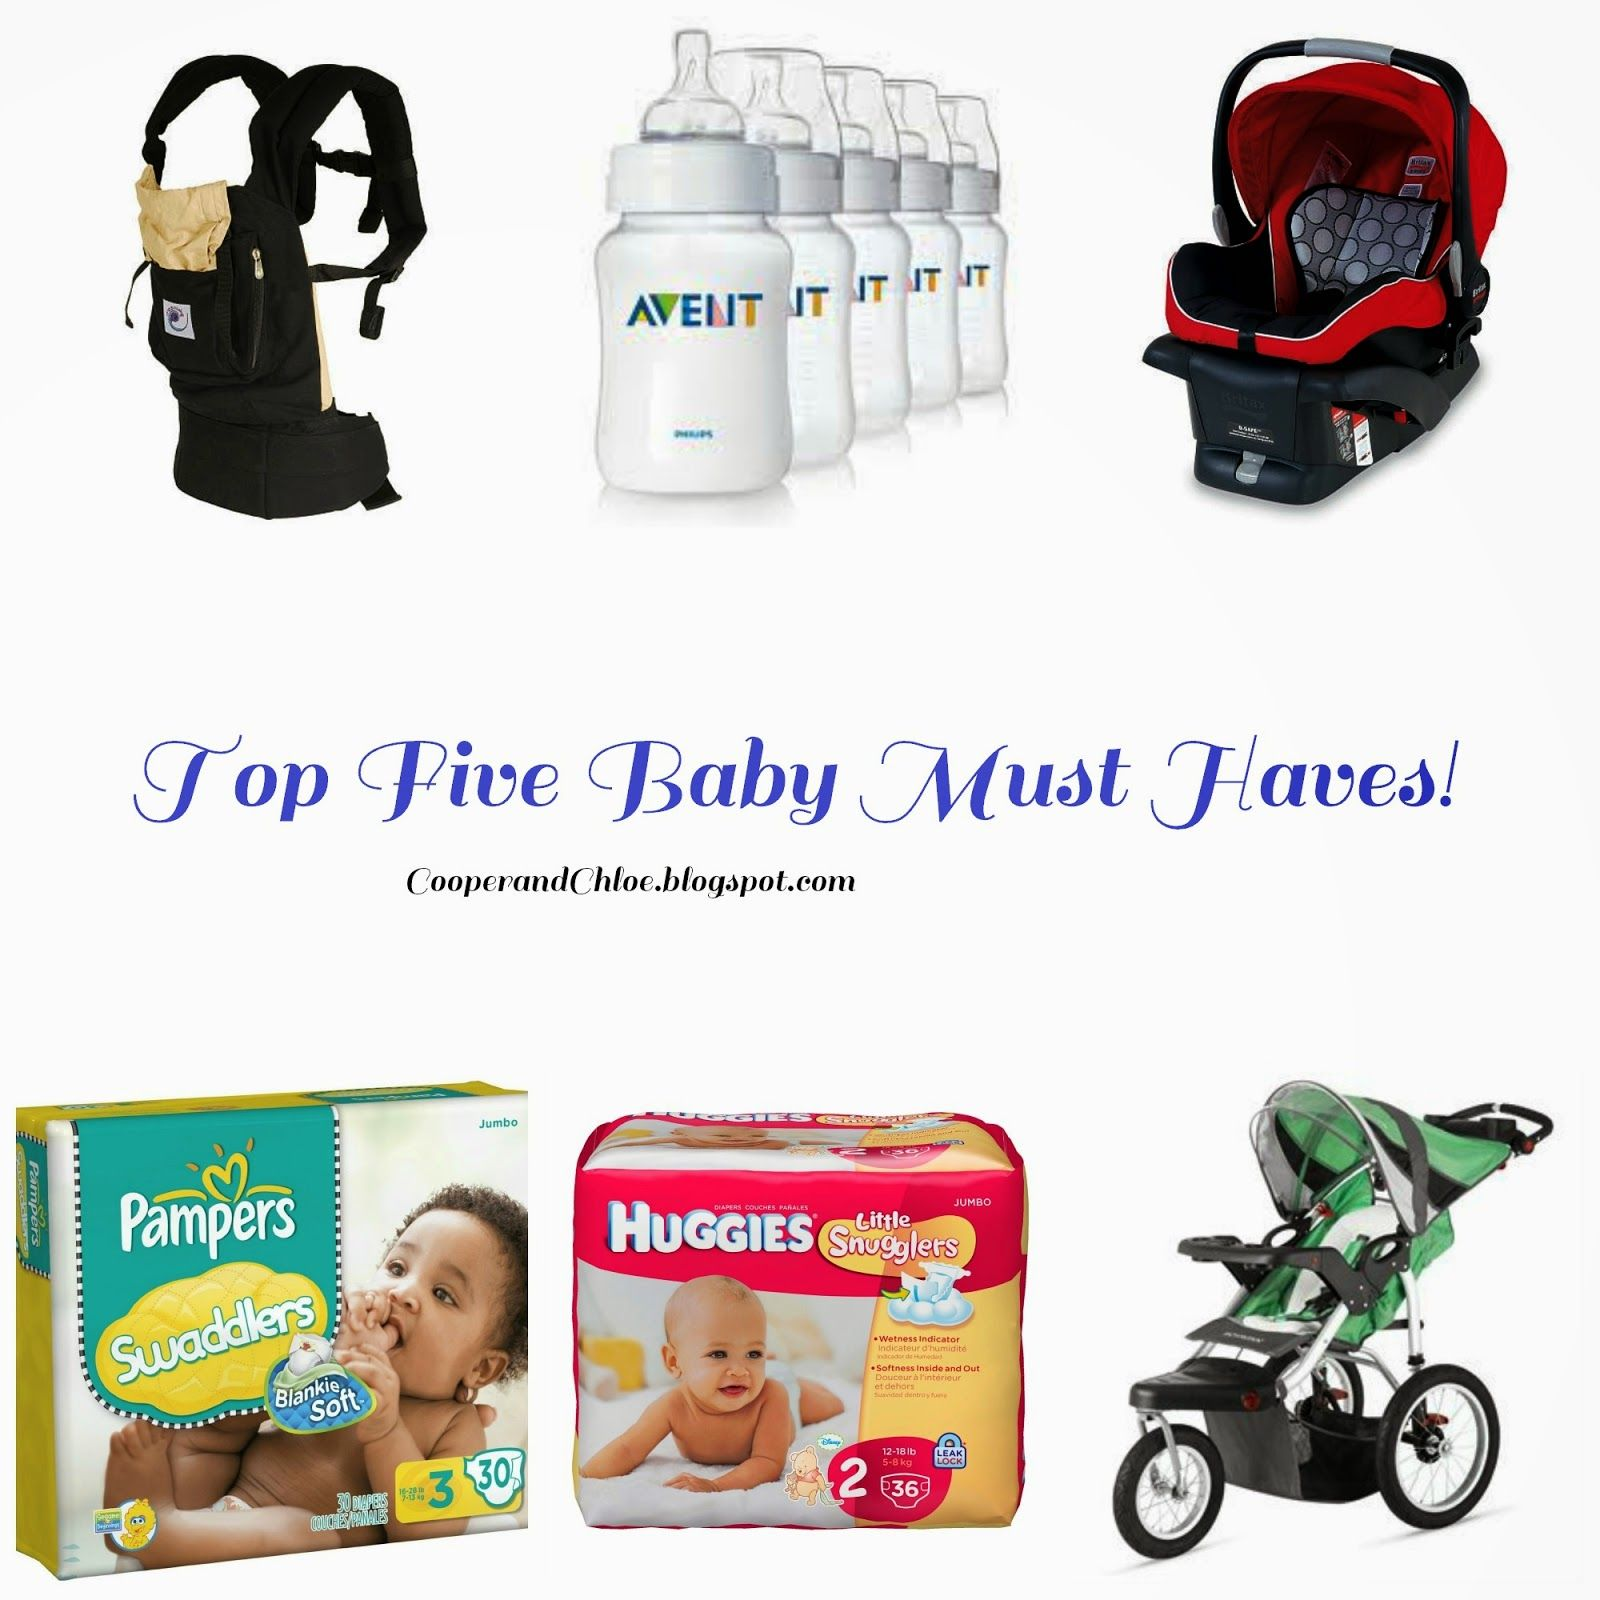 Top Five Baby Must Haves